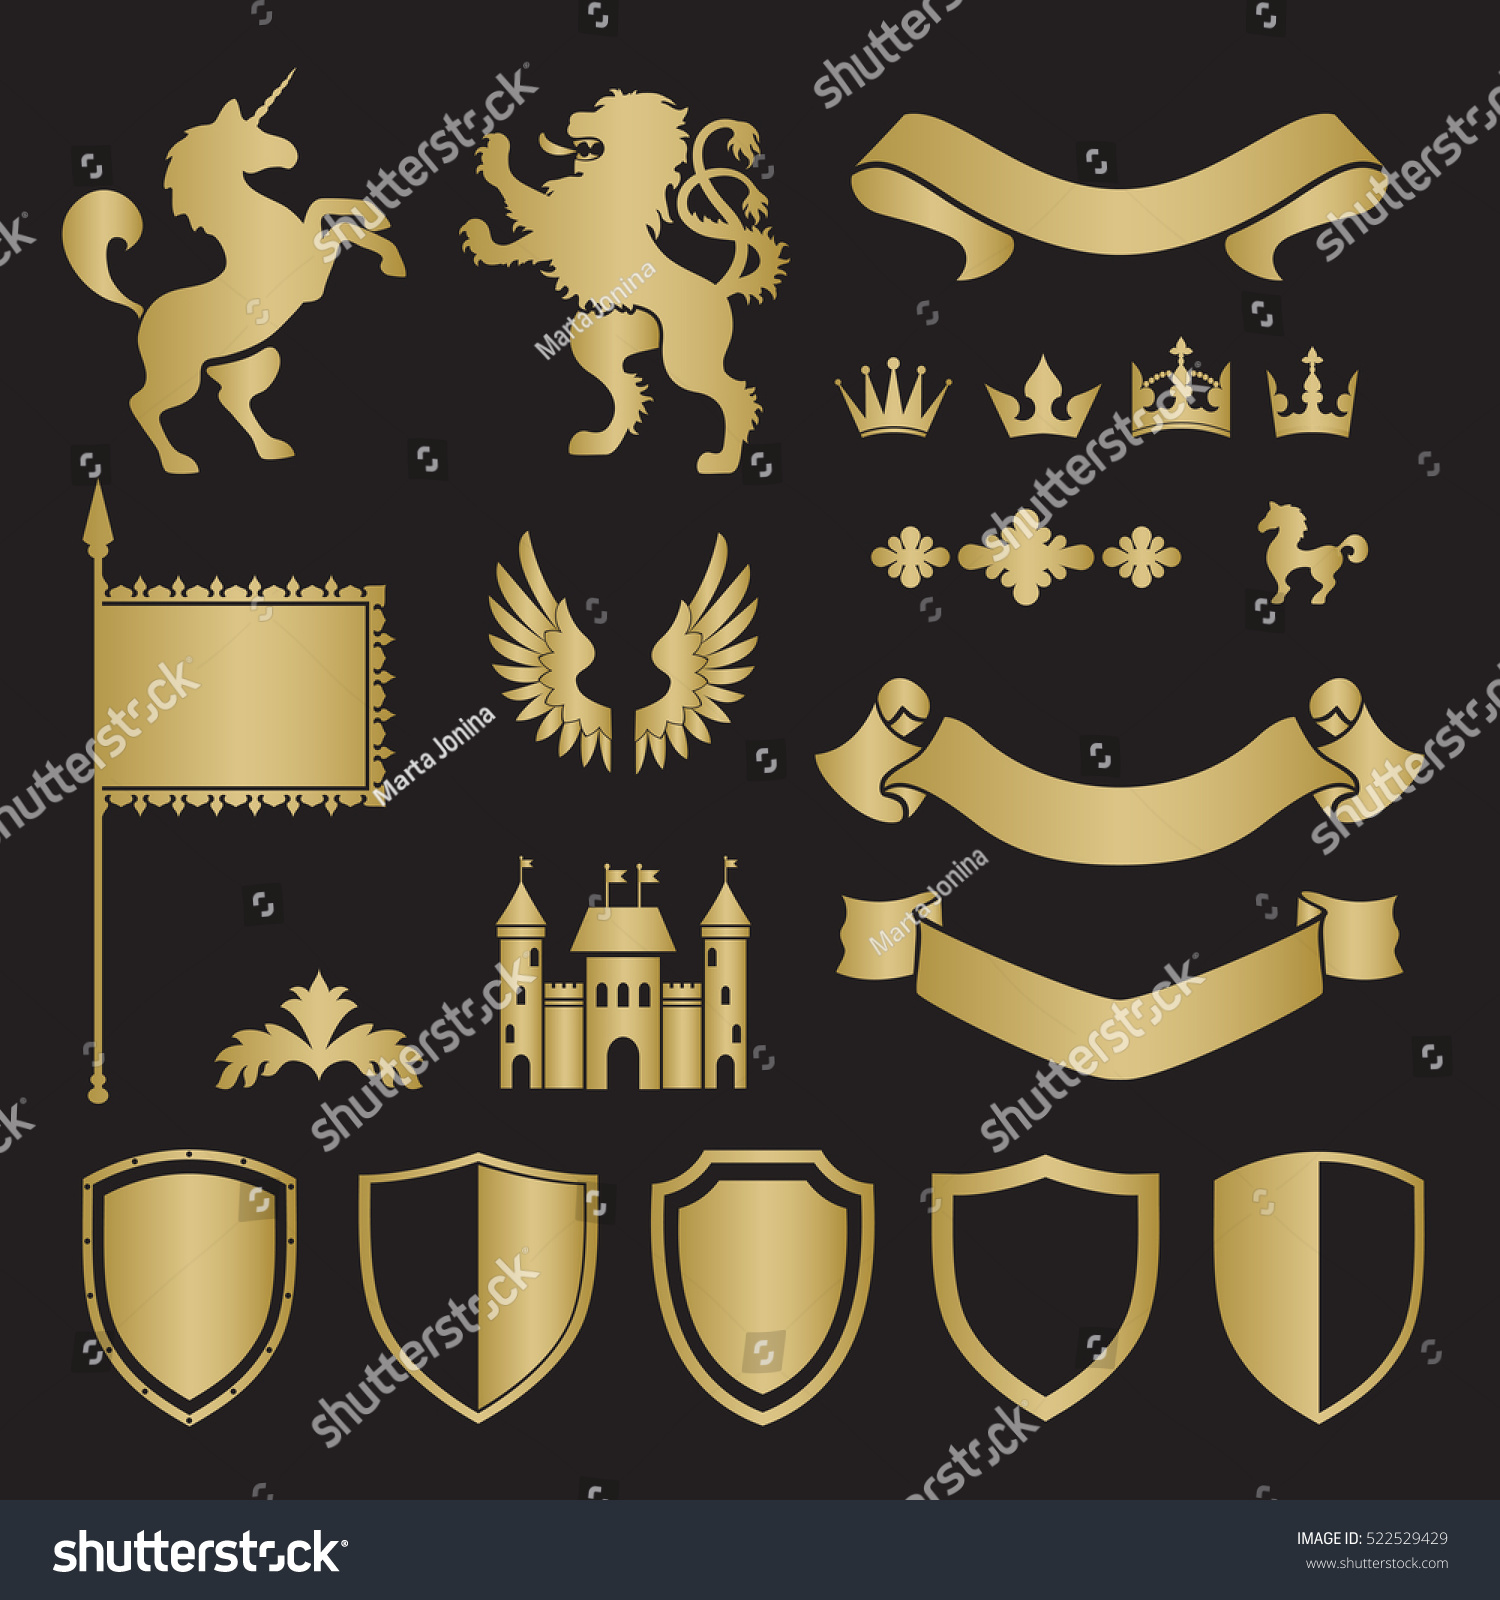 Heraldic Silhouettes Signs Symbols Safety Security Stock Vector